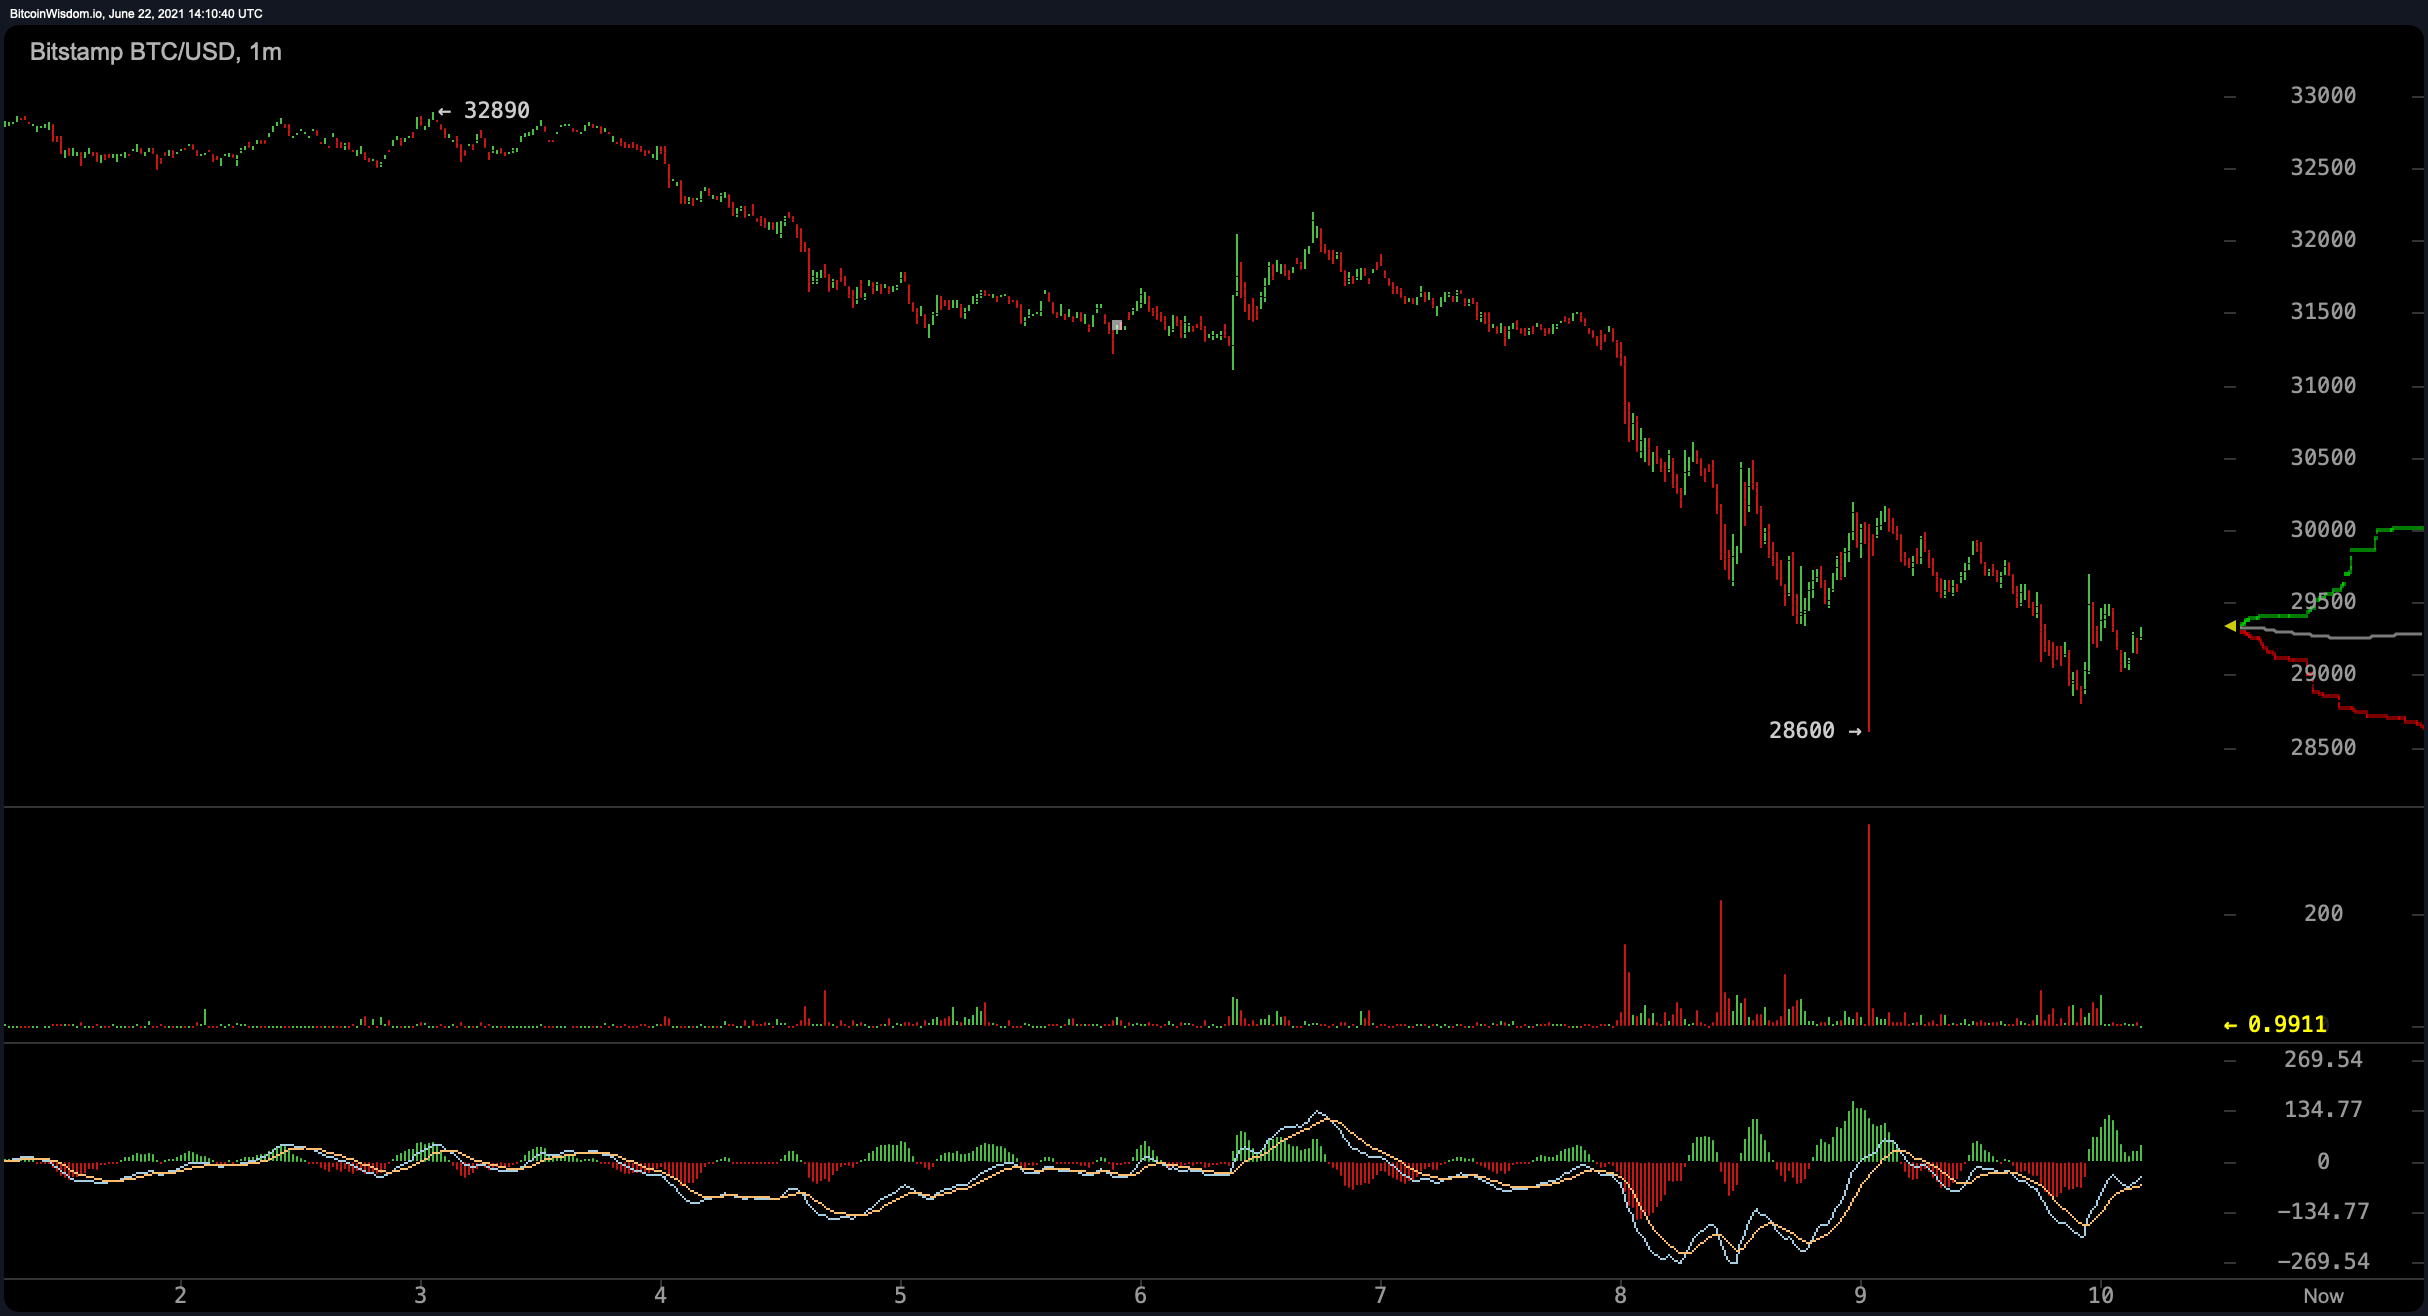 Crypto Bears Claw Markets Lower, Bitcoin Price Decline Listed Below $30K, Experts Still Positive-- Market Upgrades Bitcoin Information 2